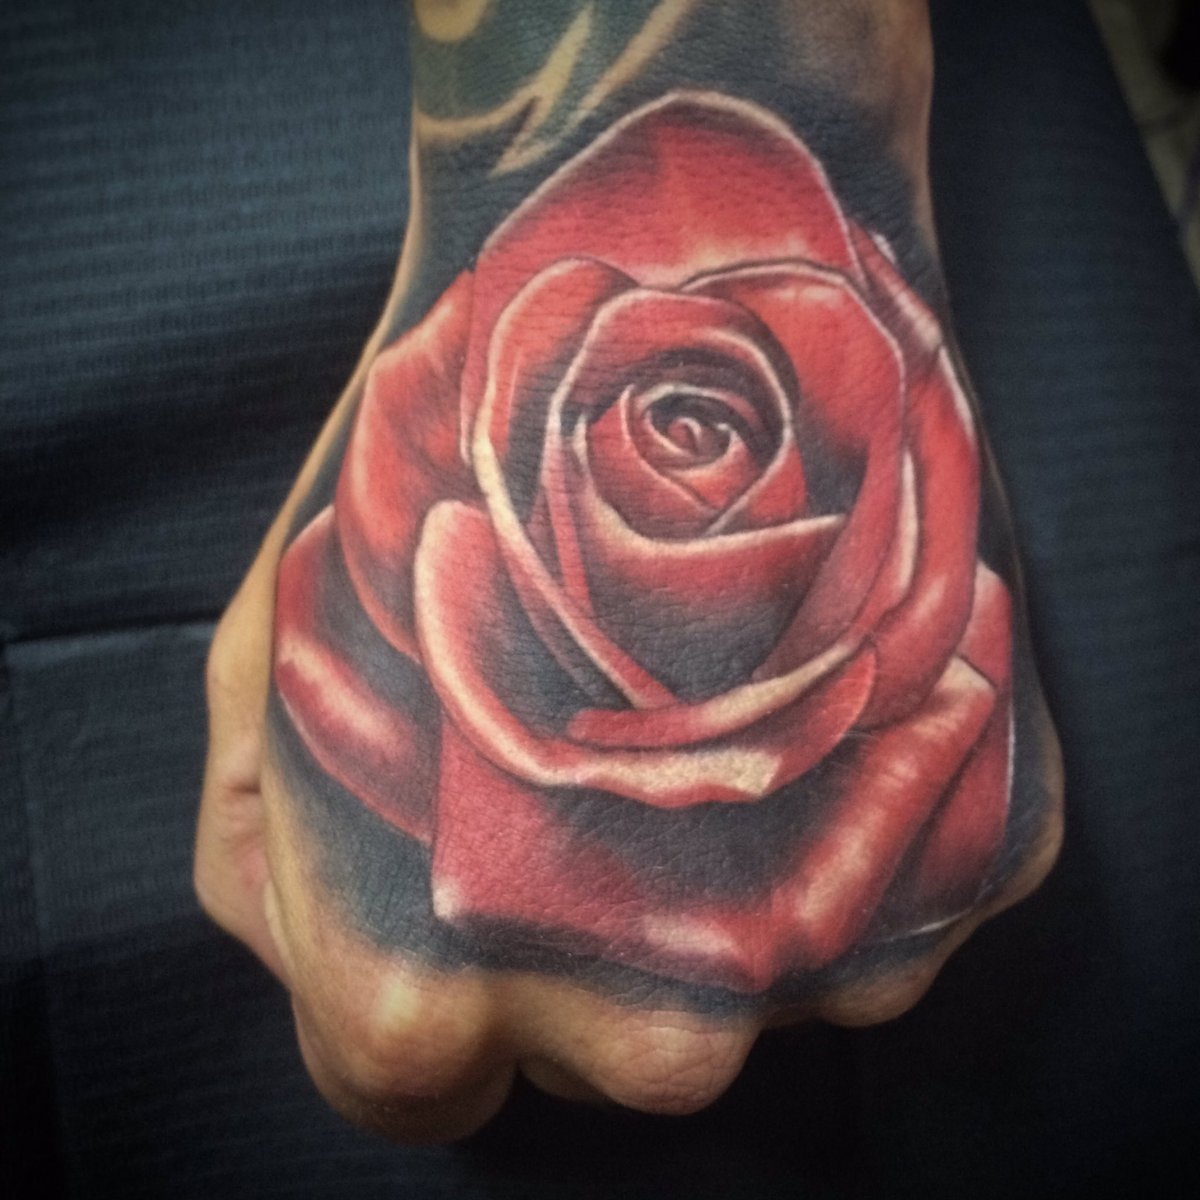 Inkversion On Twitter Fresh Red Rose Hand Tattoo Using